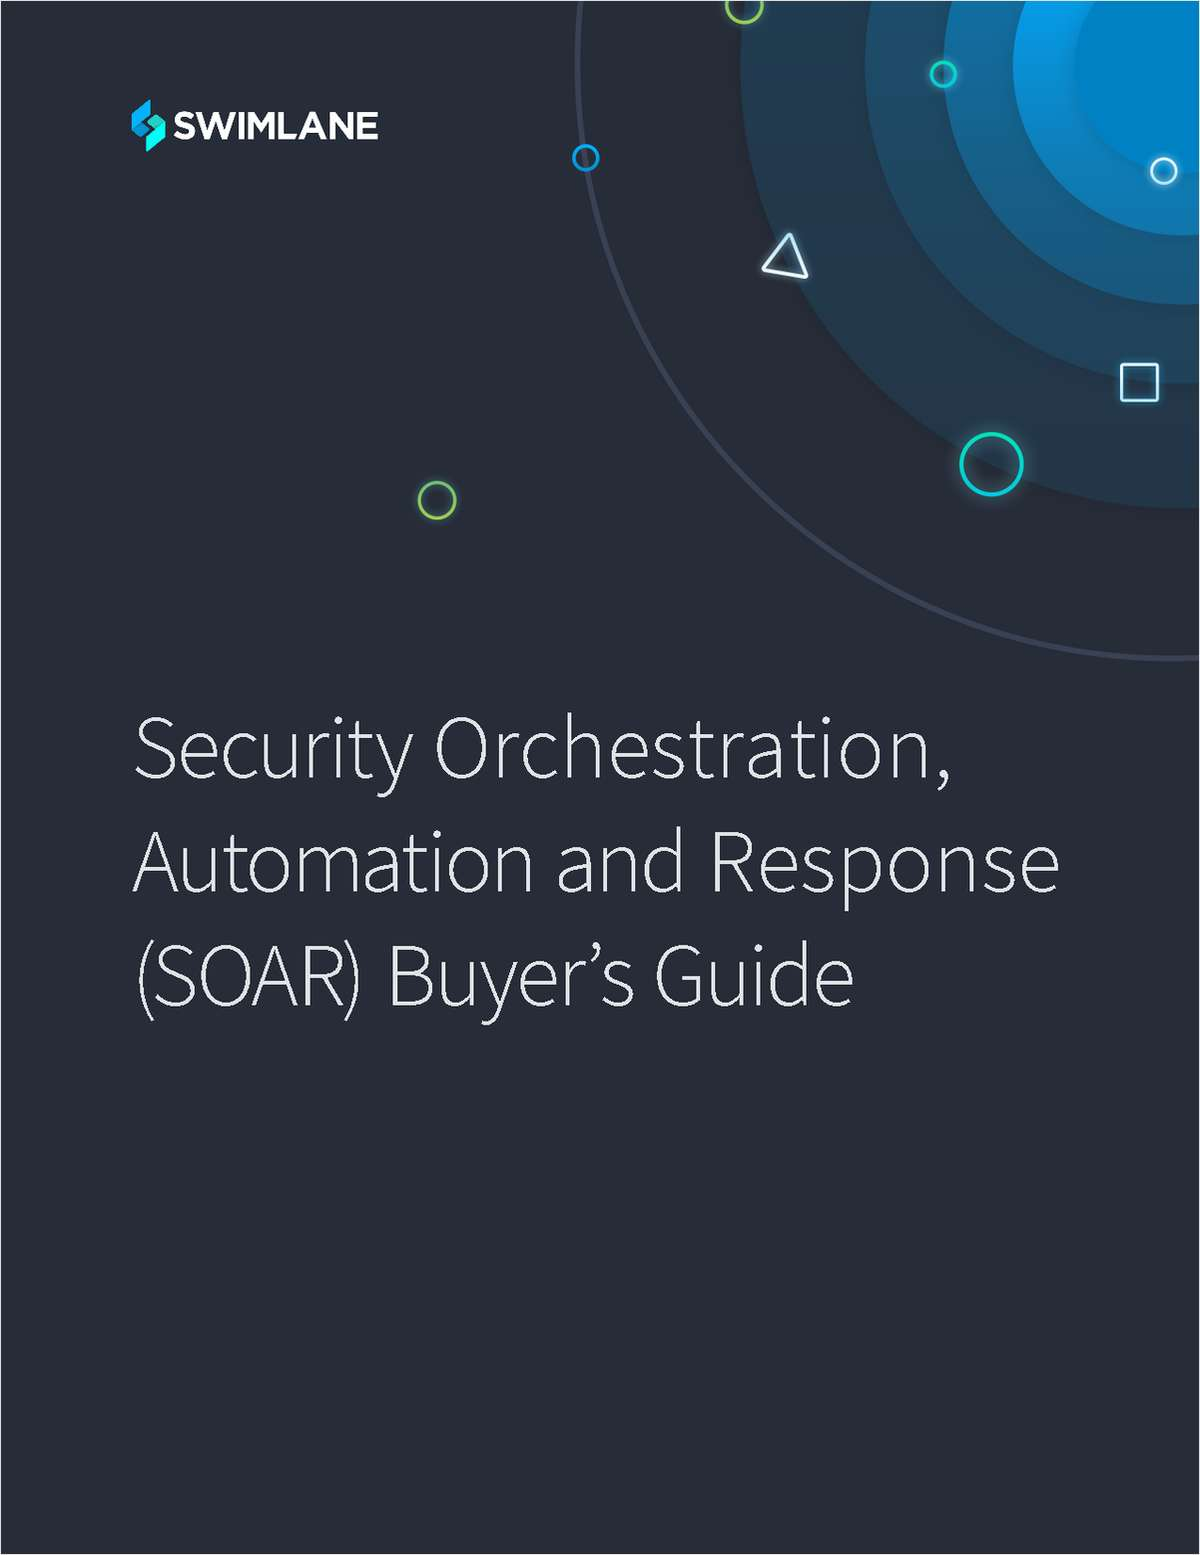 Security Orchestration, Automation and Response (SOAR) Buyer's Guide